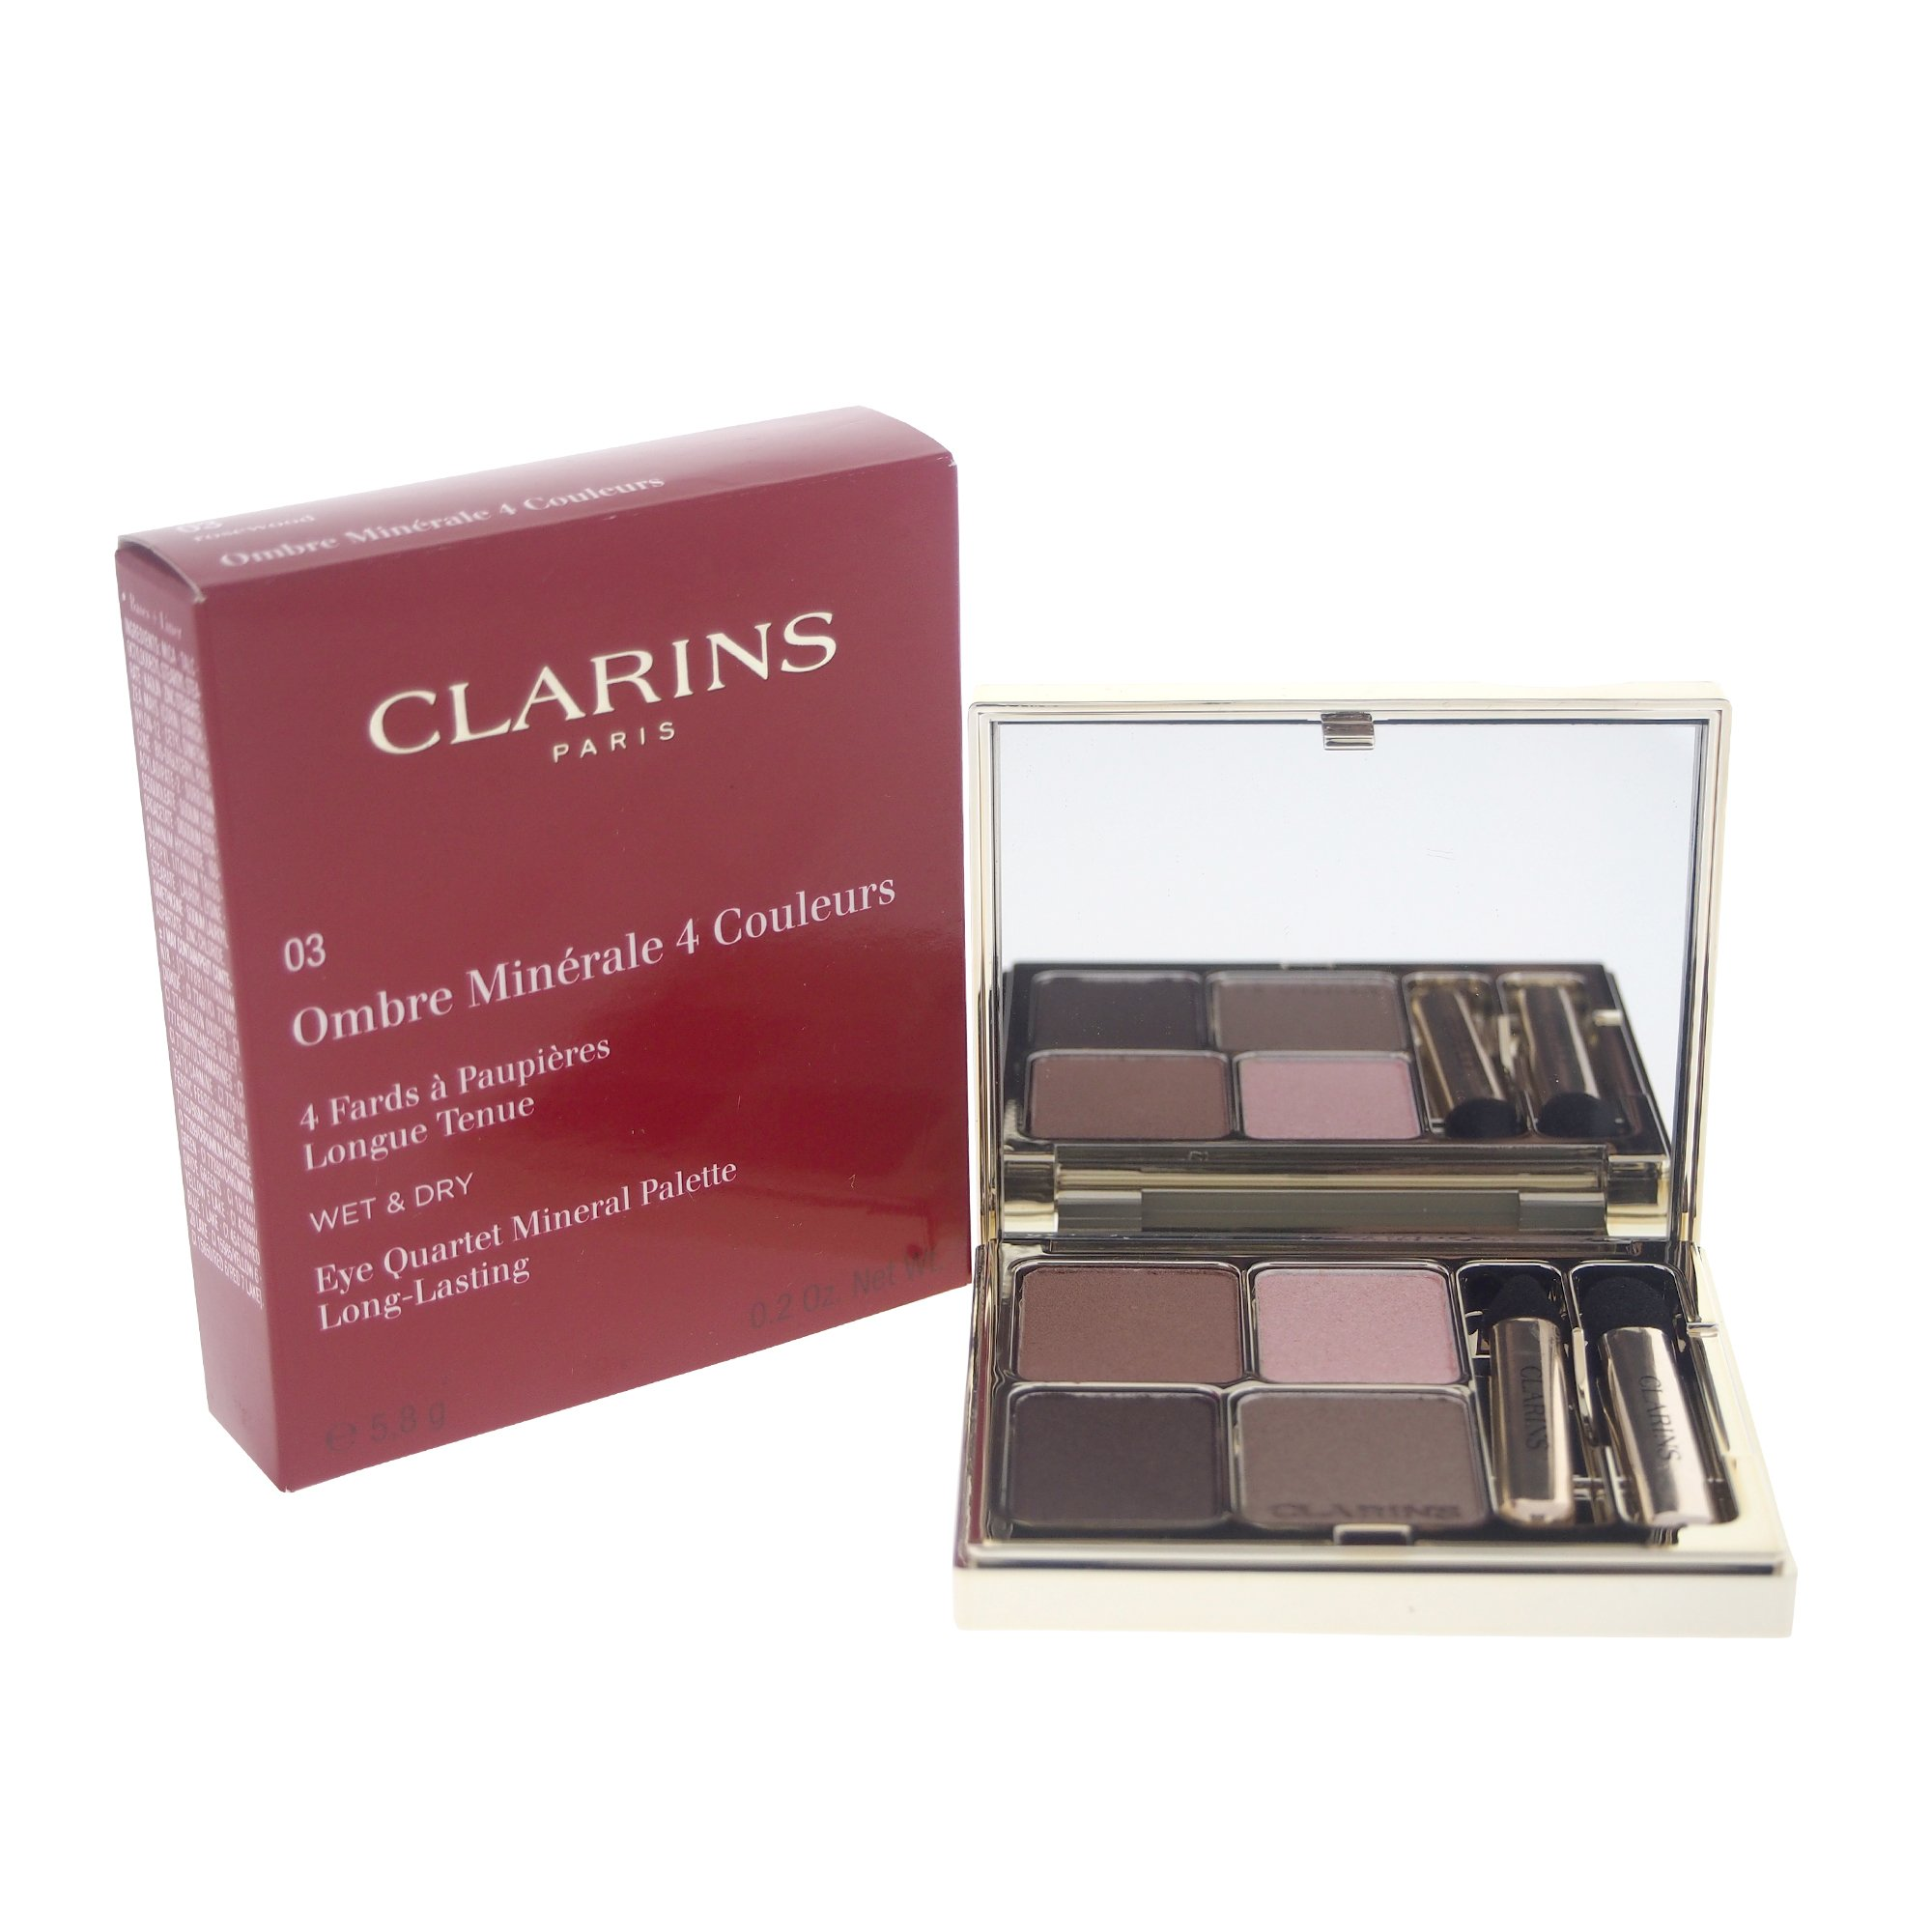 Clarins Eye Quartet Eyeshadow Mineral Palette for Women, Rosewood, 0.2 Ounce